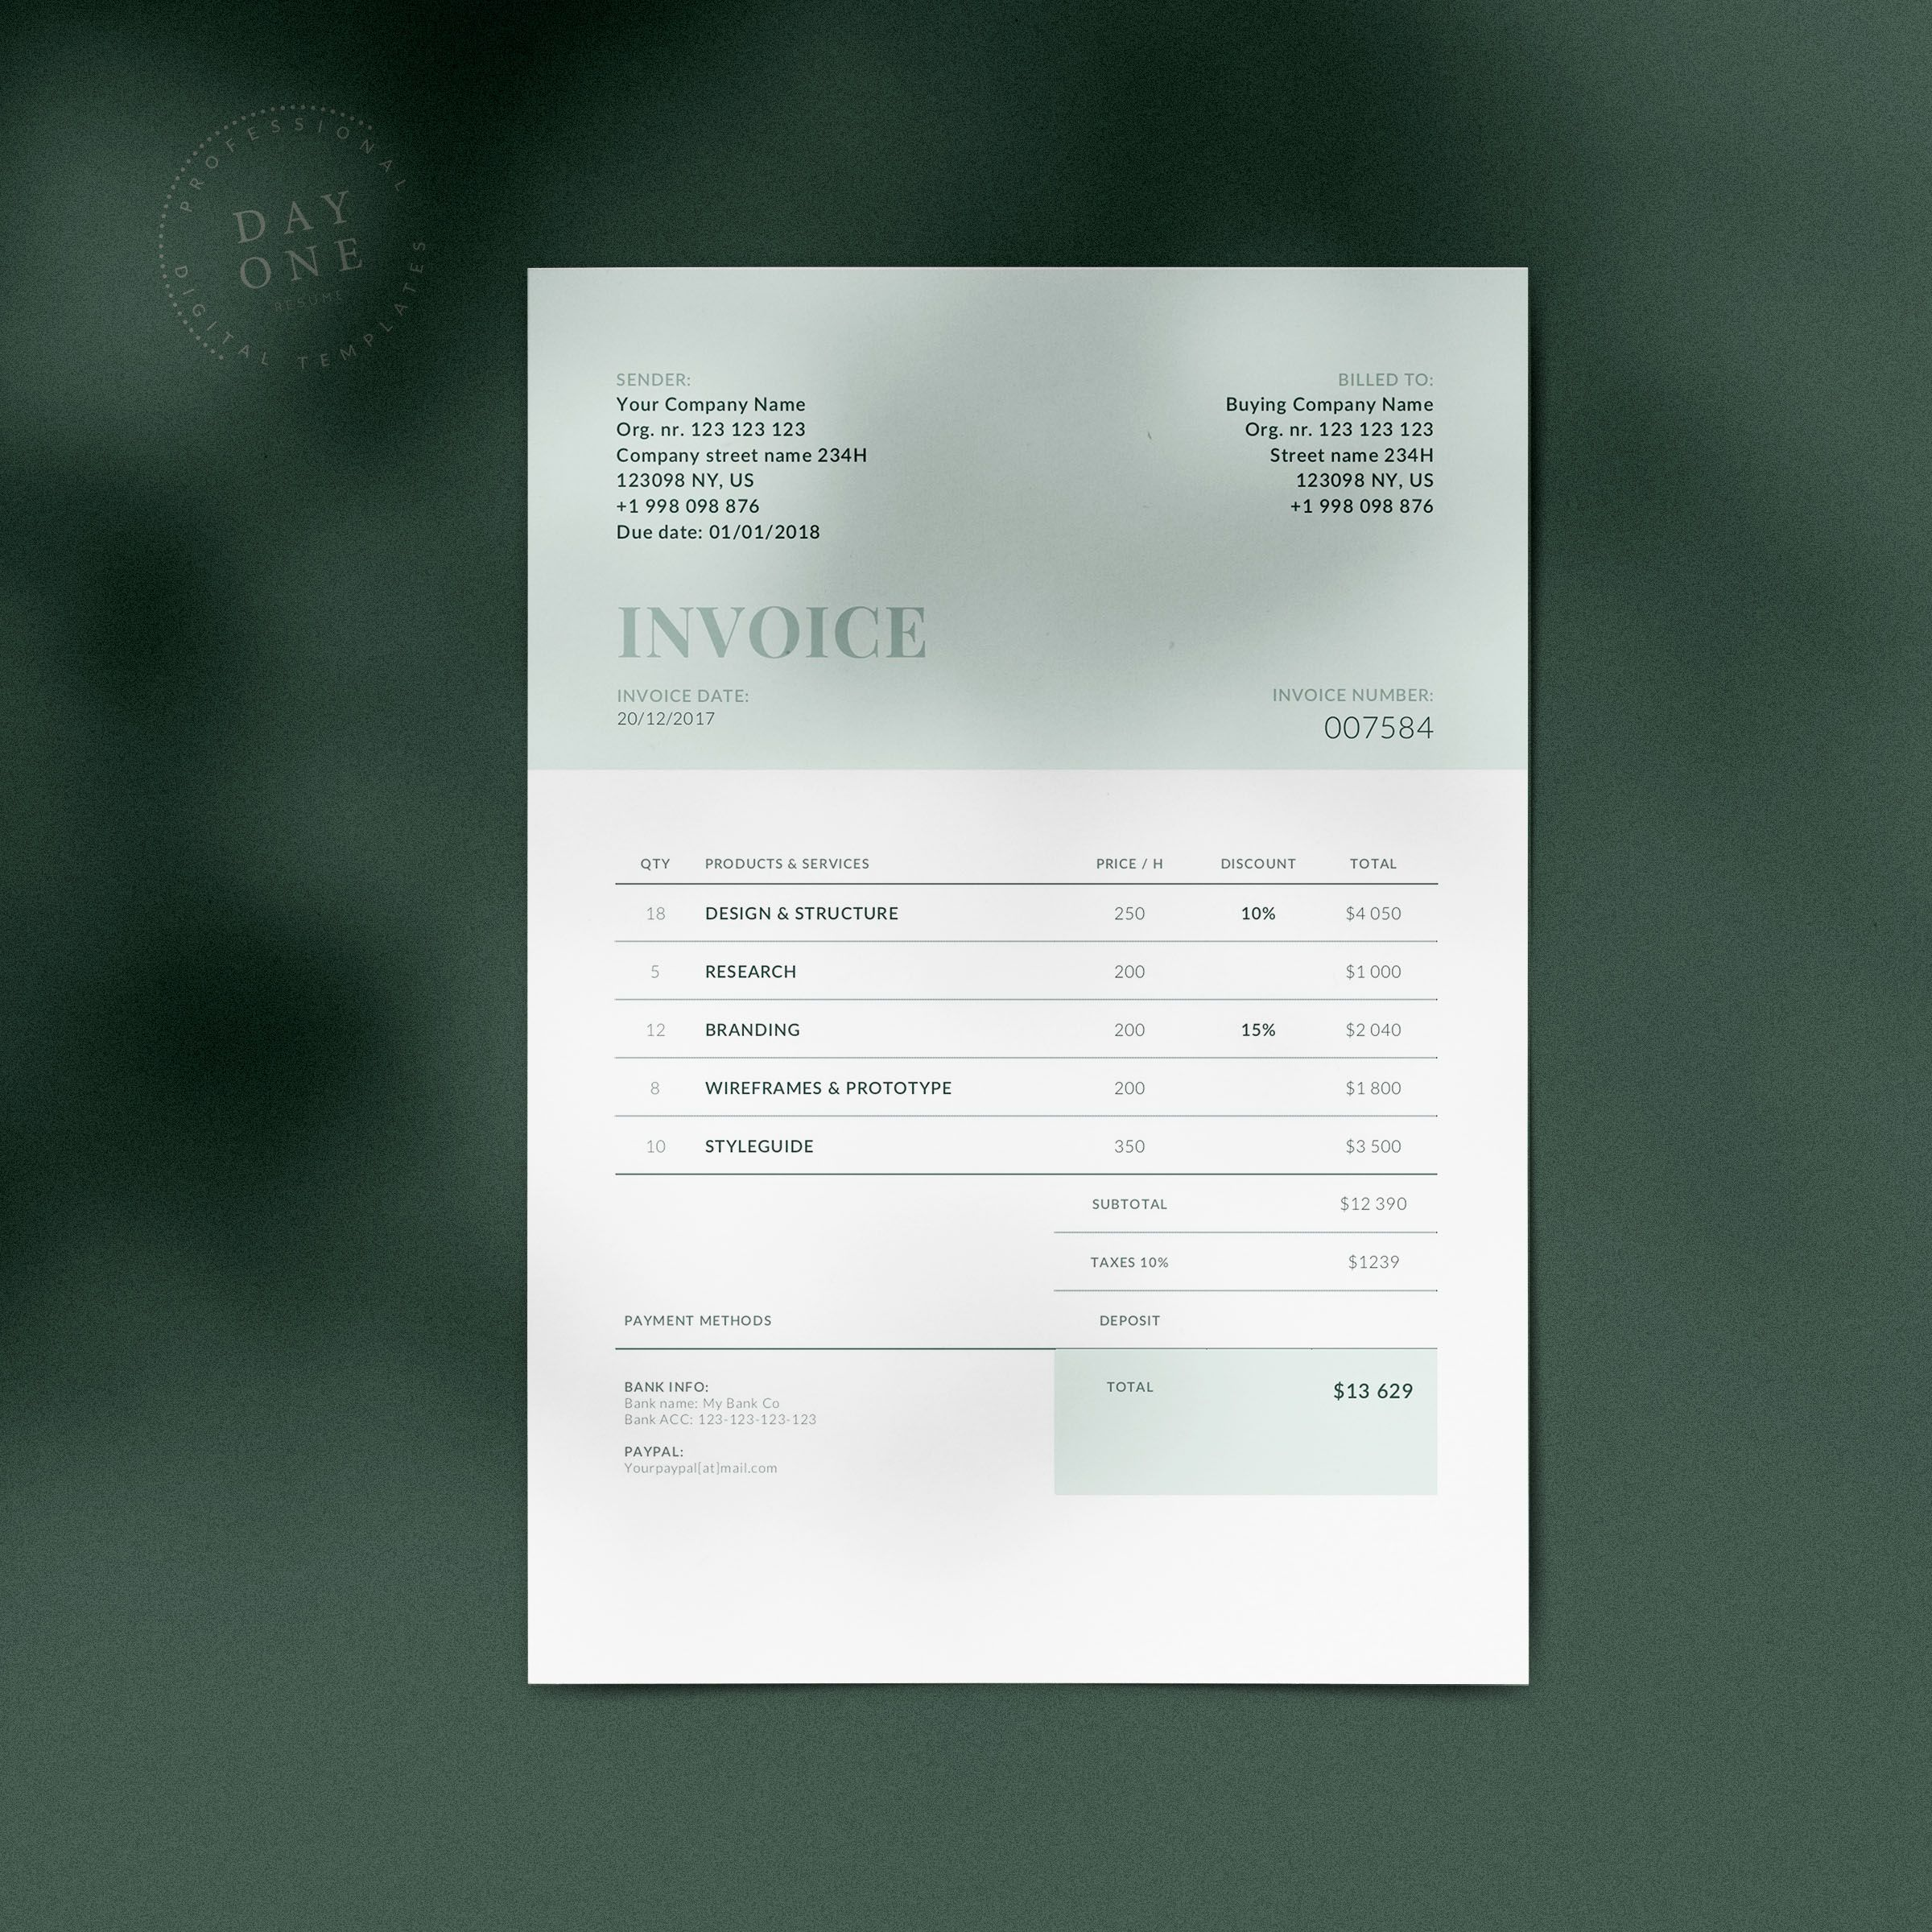 Invoice Template Made In England Invoice Design Template Invoice Design Invoice Template